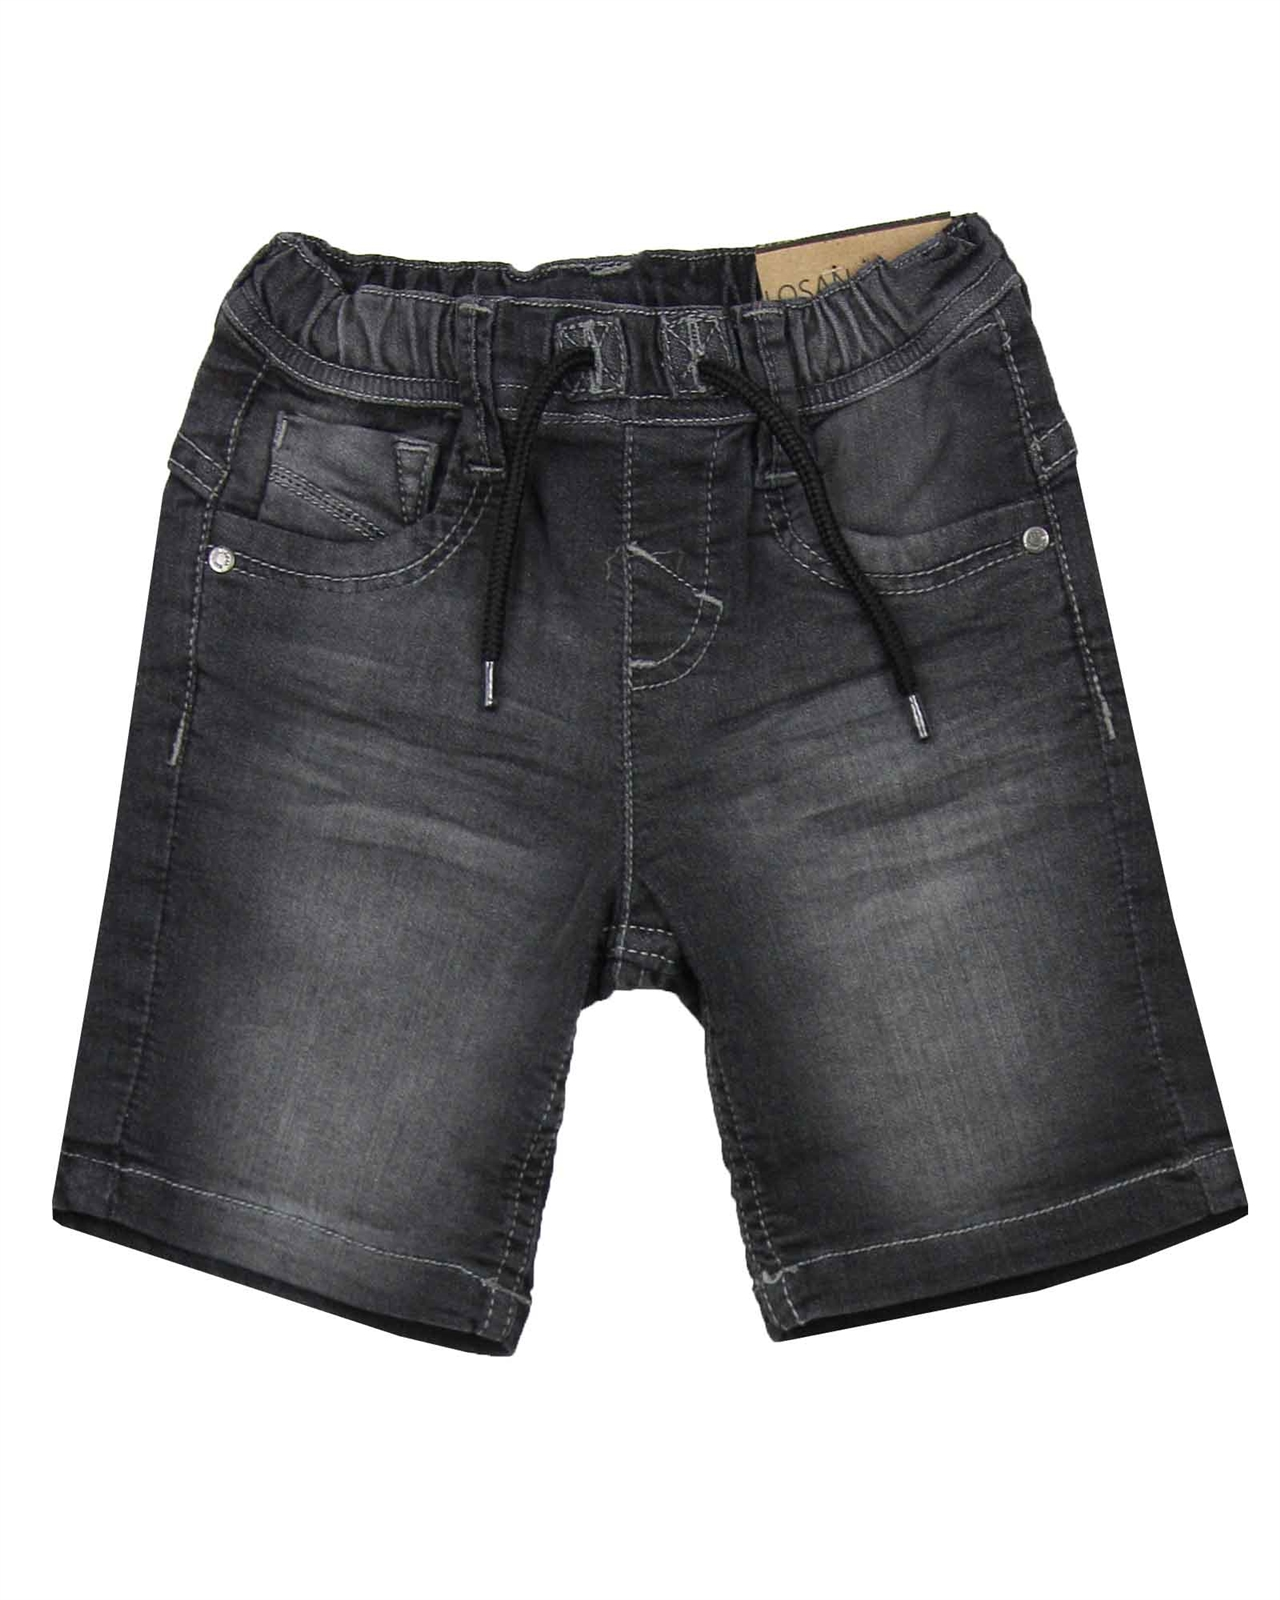 Losan Boys Jogg Jean Shorts with Striped Waistband Sizes 2-7